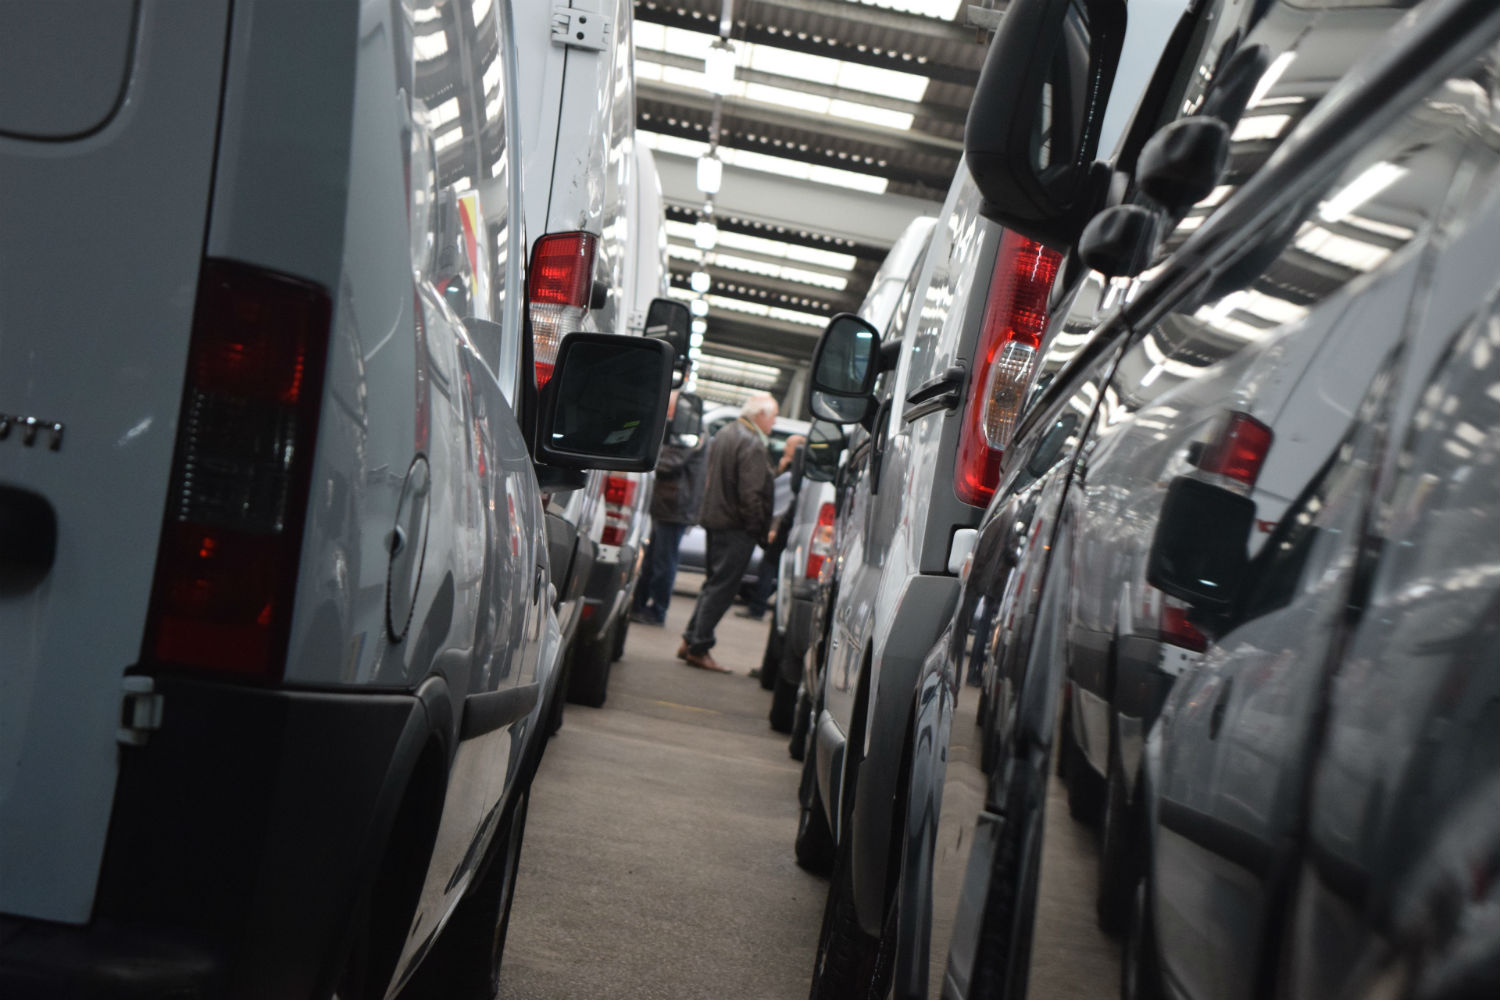 Commercial vehicles for sale at a Manheim auction